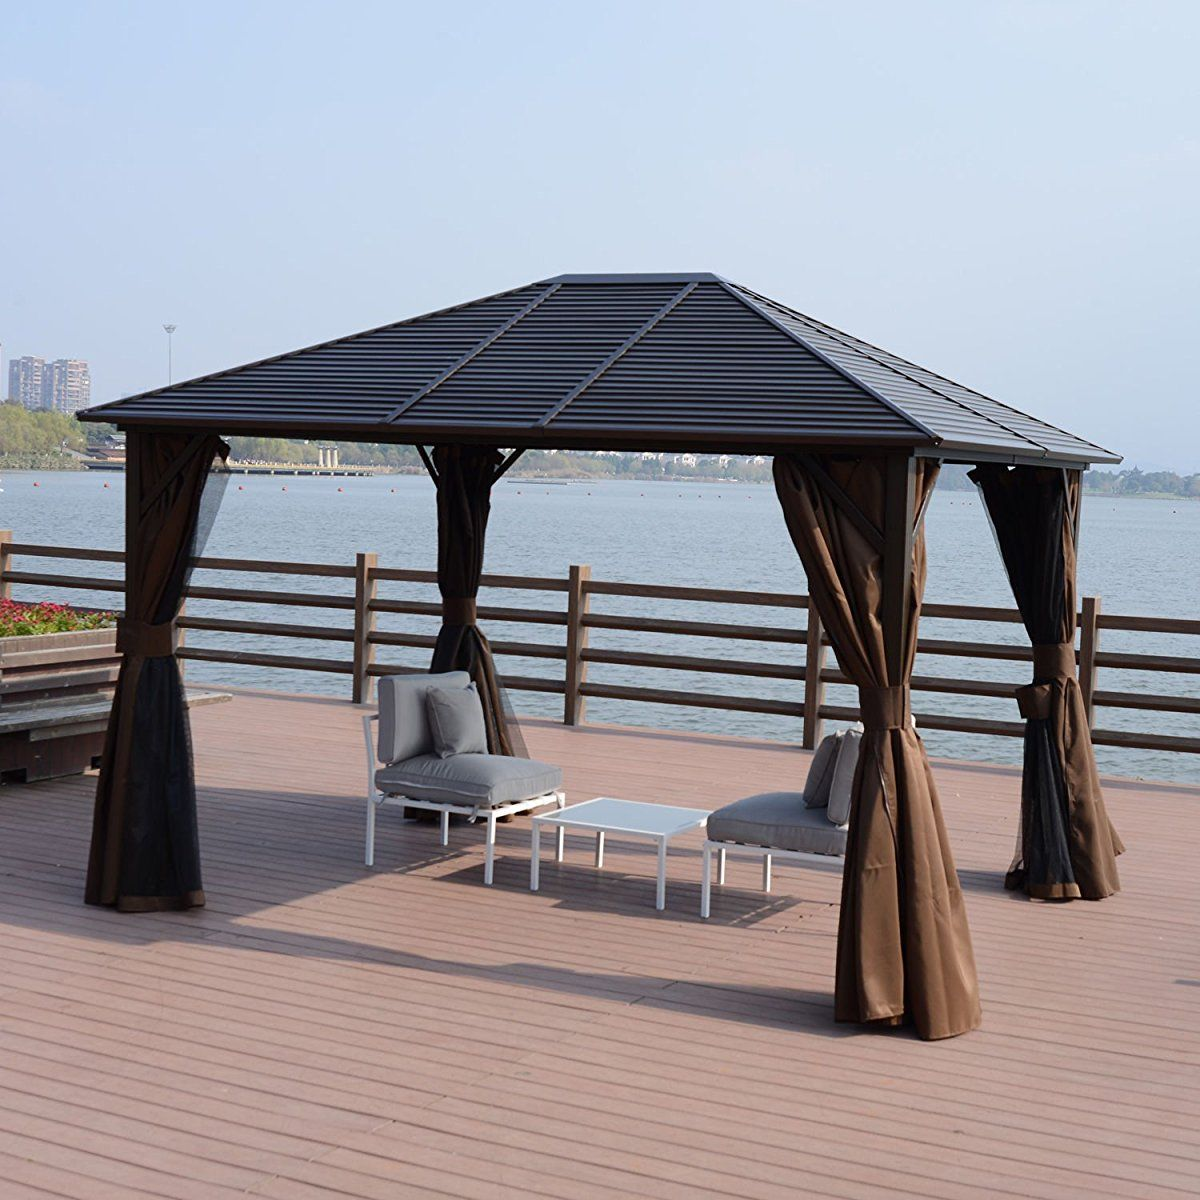 Outsunny 12 X 10 Steel Hardtop Outdoor Gazebo With Curtains Brown Black Hardtop Gazebo Patio Entertaining Gazebo